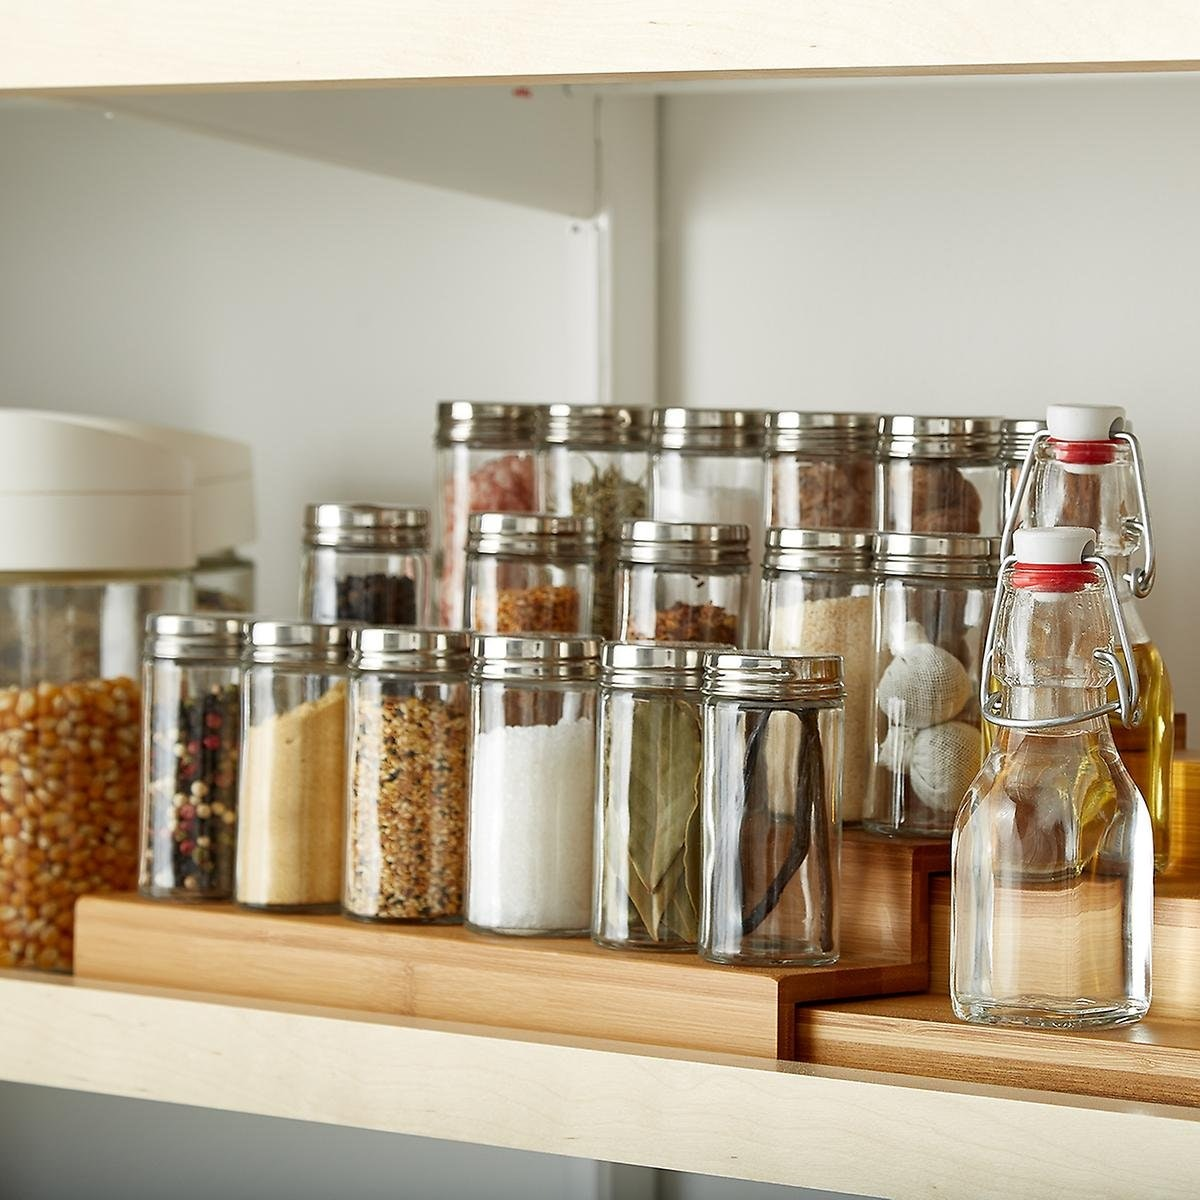 Container Store Bamboo Expanding Spice Shelf